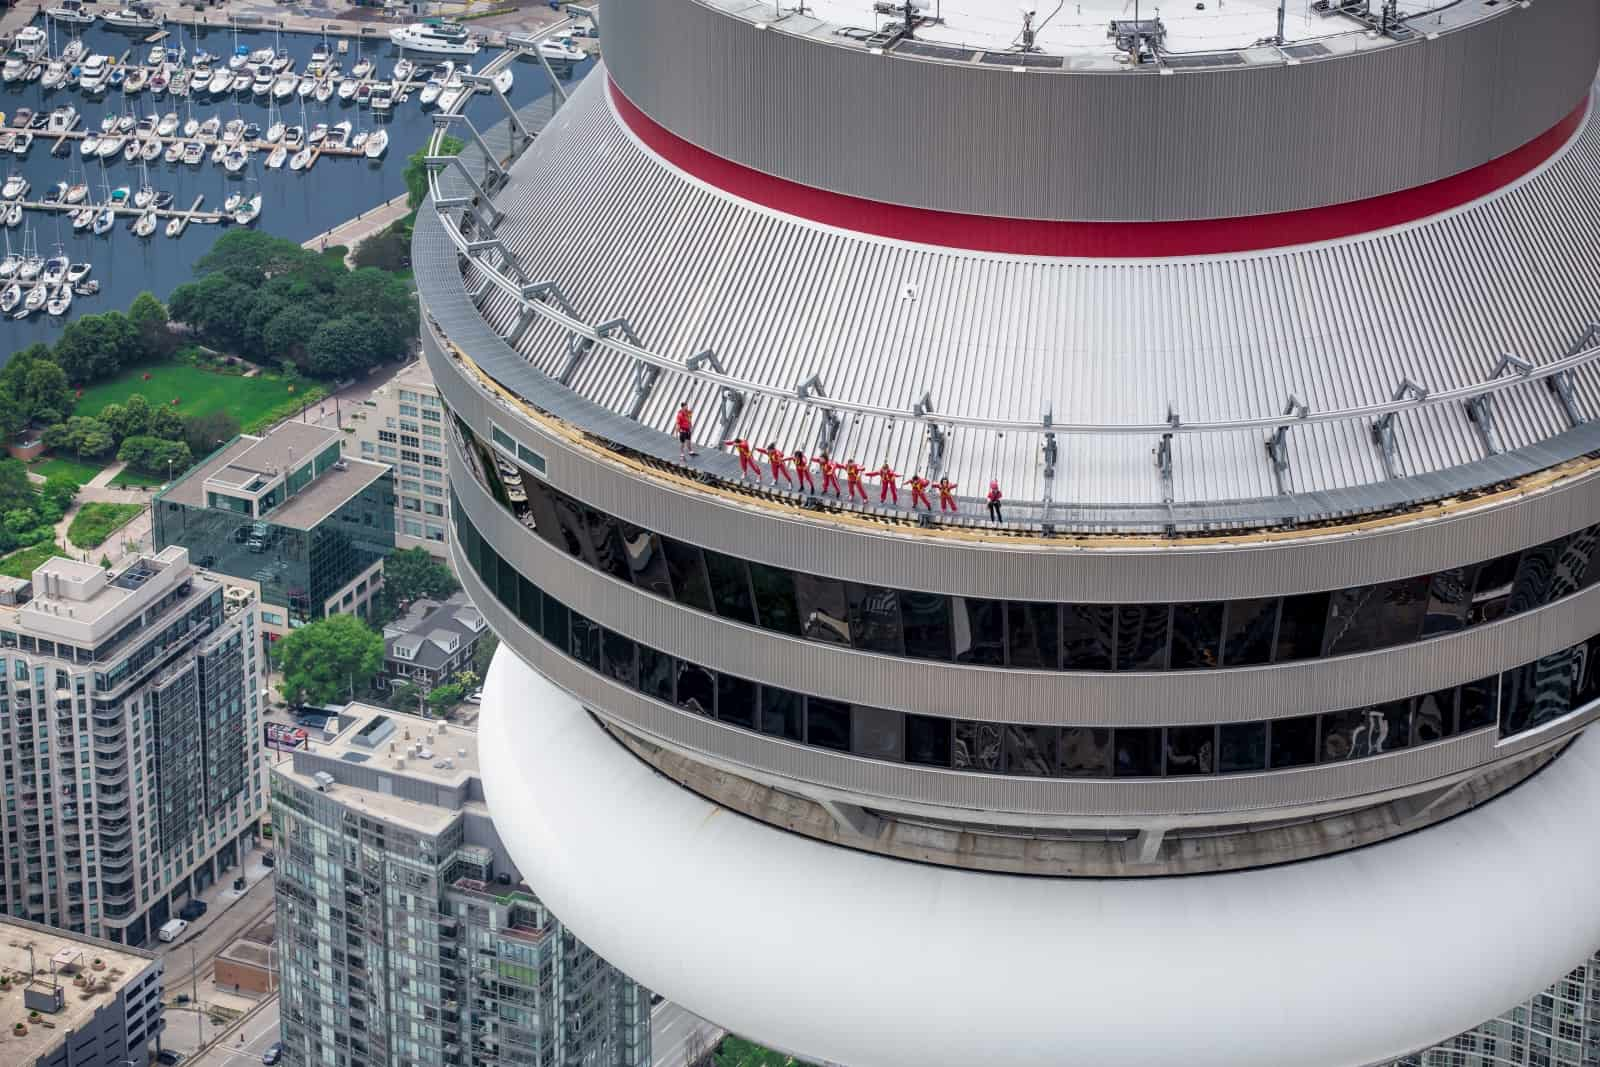 EdgeWalk at the CN Tower Foto Courtesy of The CN Tower